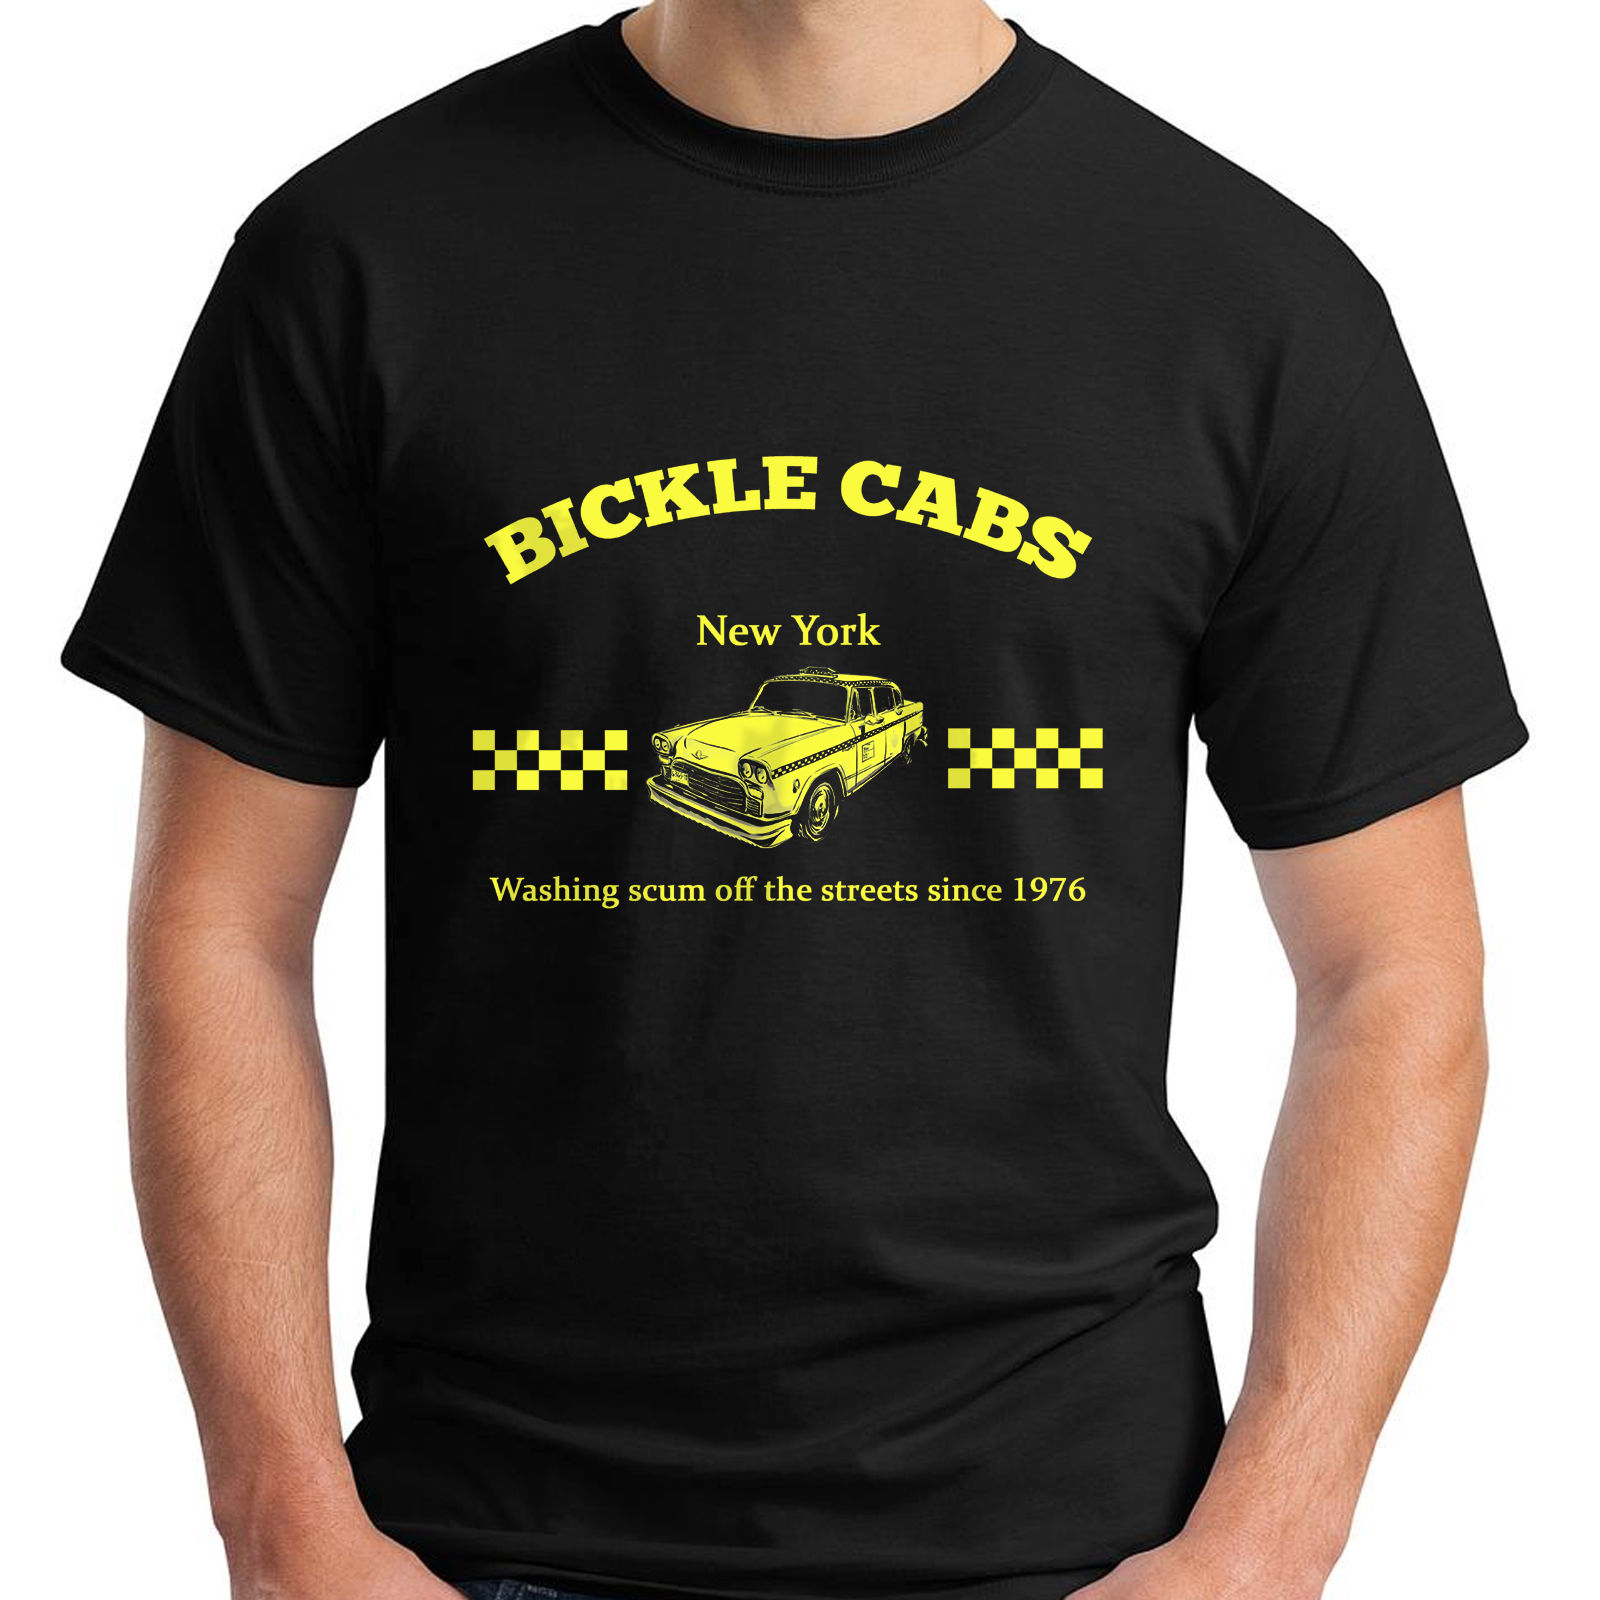 Bickle Cabs T Shirt Inspired by Taxi Driver Cult 70s Movie T-Shirt Size S-5XL Man Fashion Round Collar T Shirt top tee Punk Top